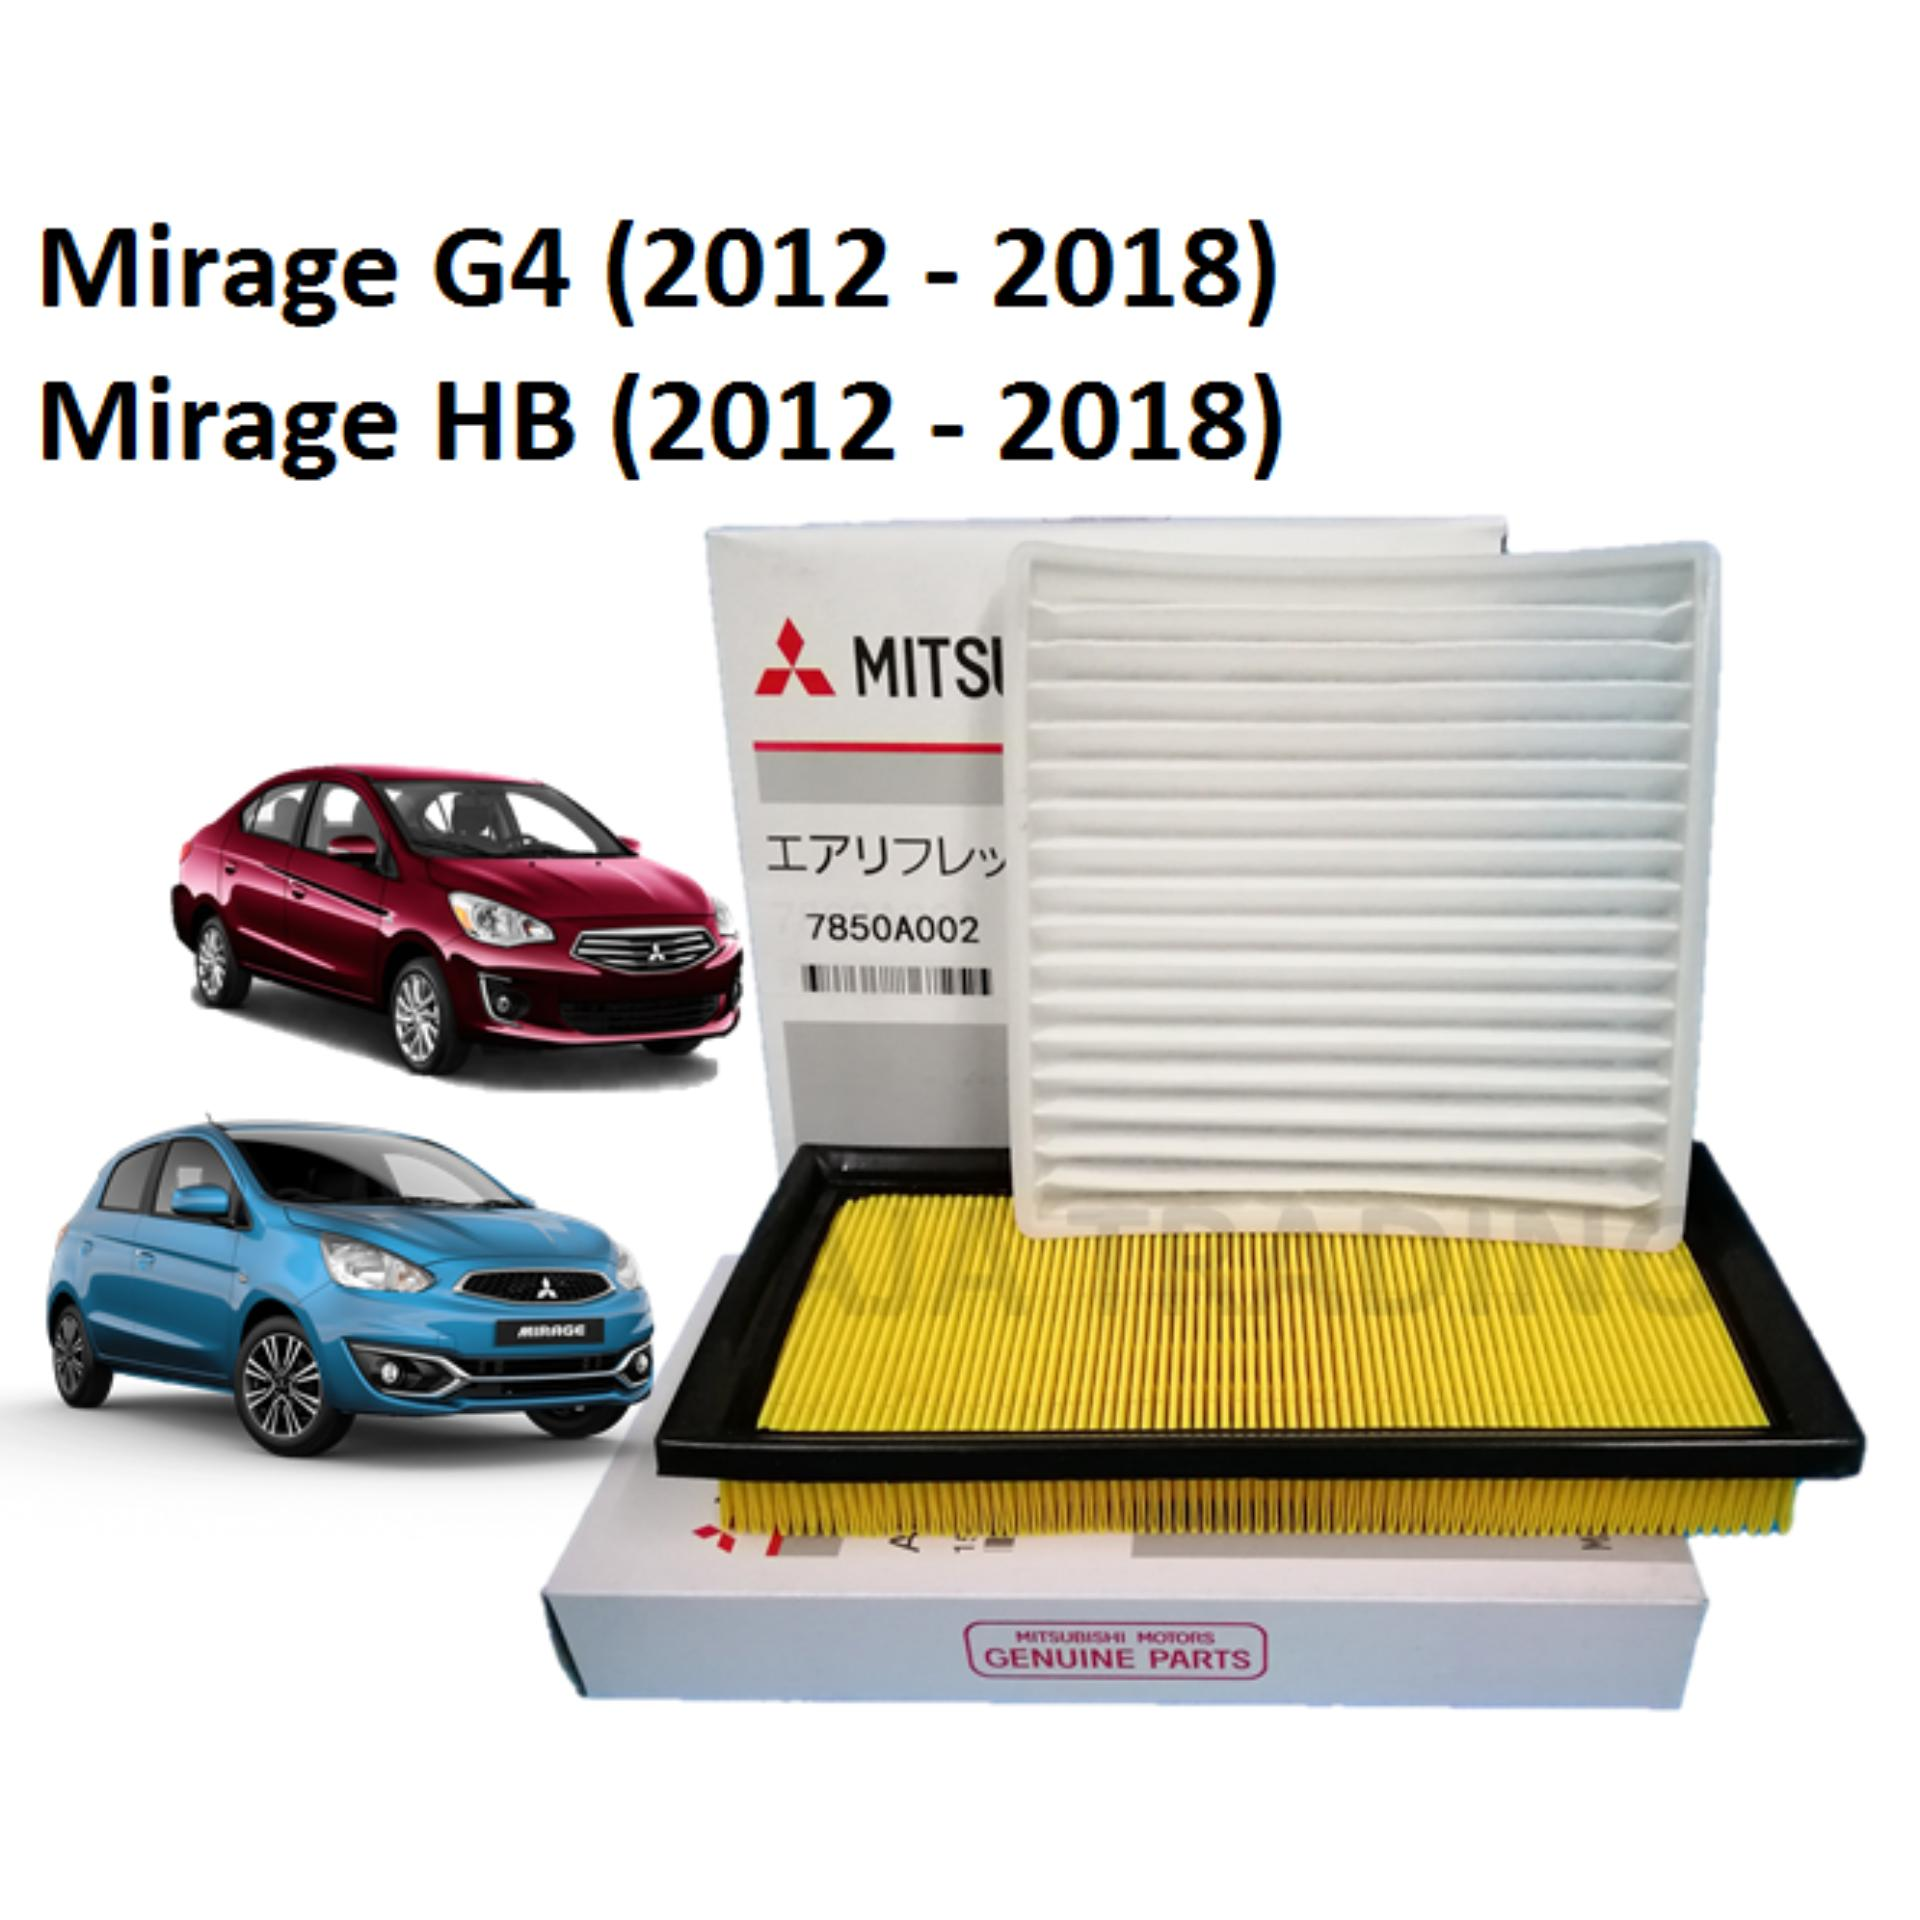 Air Filter Car For Sale Engine Online Brands Prices 2007 Chevrolet Aveo Ls Fuel Combo And Cabin Mitsubishi Mirage G4 2012 Up